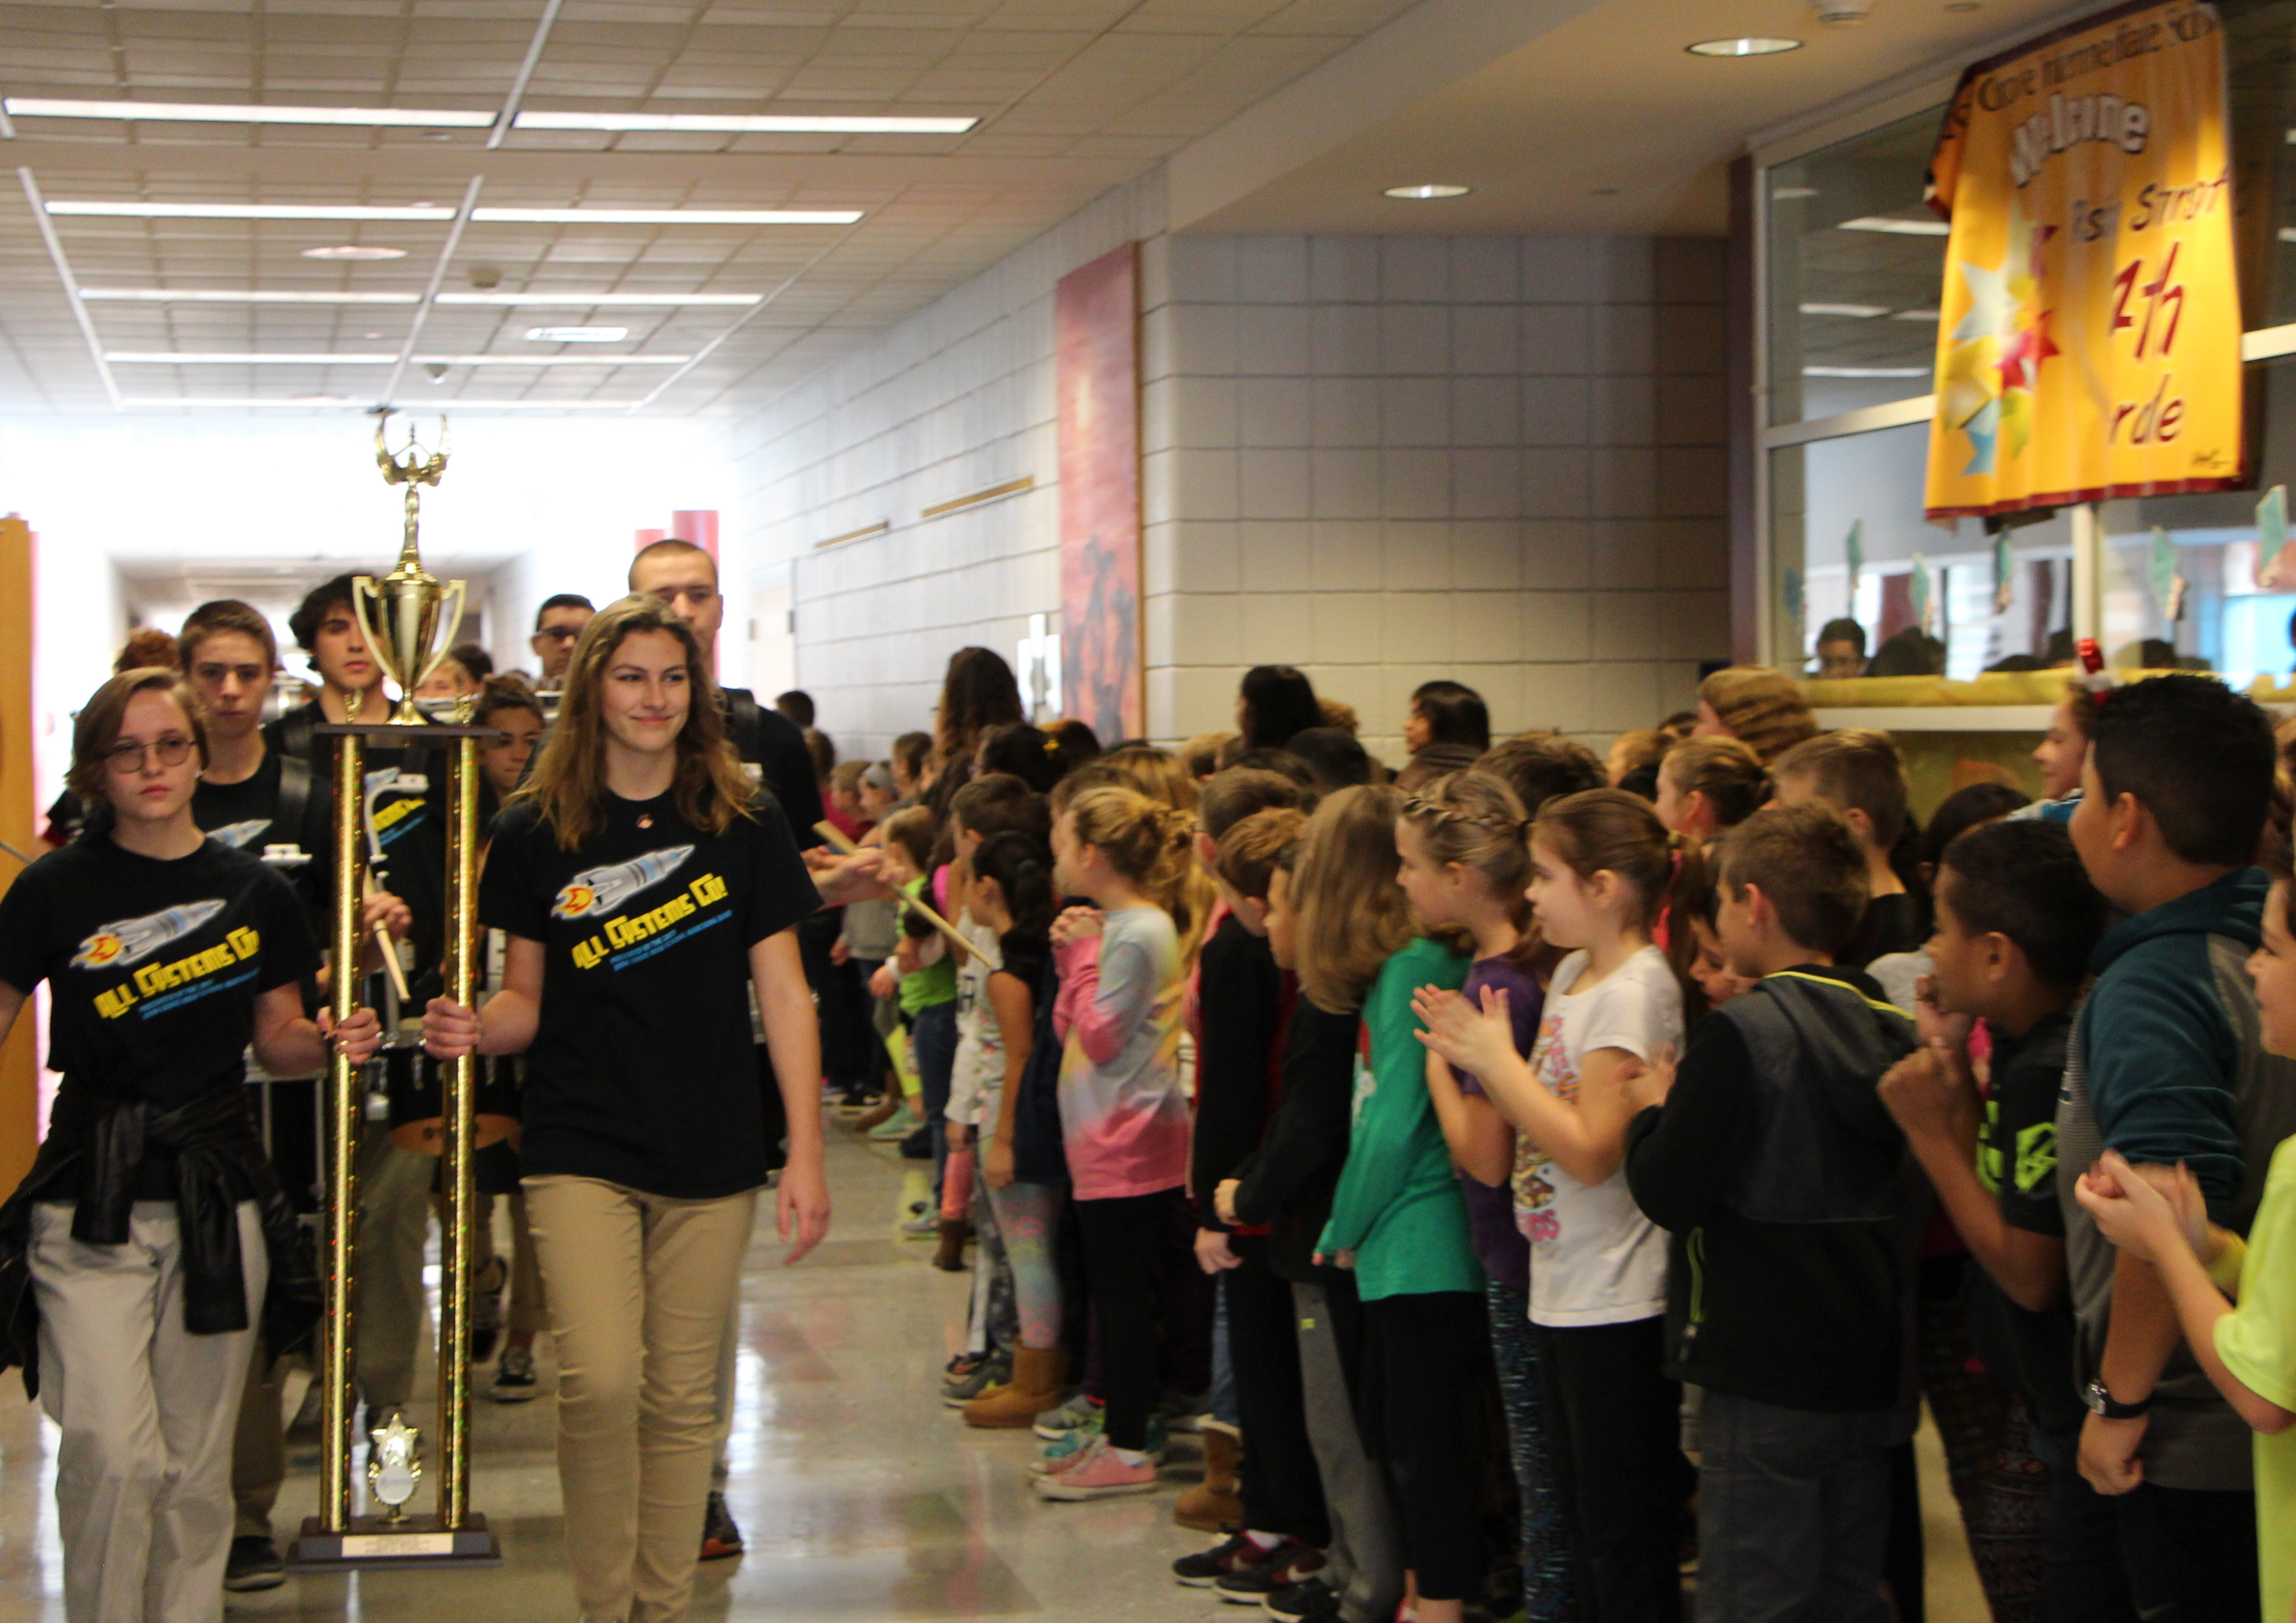 School District Salutes State-Champion Marching Band from Avon Grove High School